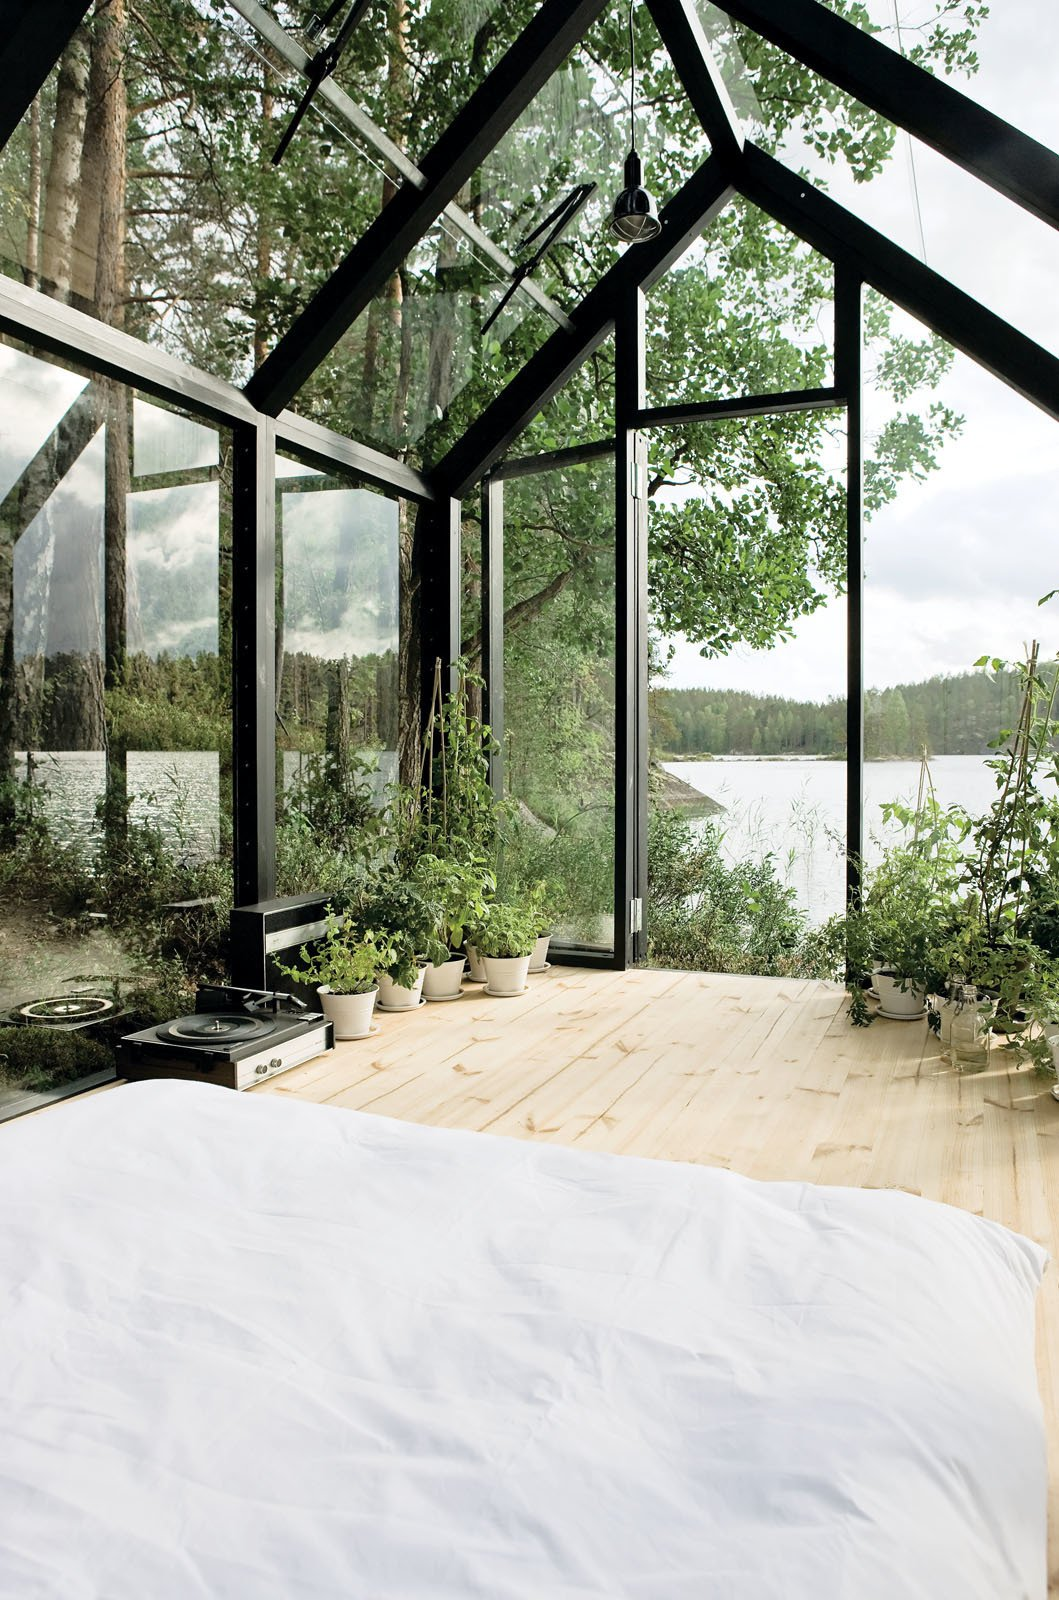 Helsinki architect Ville Hara and designer Linda Bergroth collaborated on a prefab shed-meets-sleeping-cabin, which can be assembled with little else than a screwdriver. Bergroth, inspired by nomadic yurt-dwellers, wanted an indoor/outdoor experience for her property in Finland. Tagged: Shed & Studio, Living Space, and Sun Room.  Botanical  Space by Brian Perez from Shedded Bliss